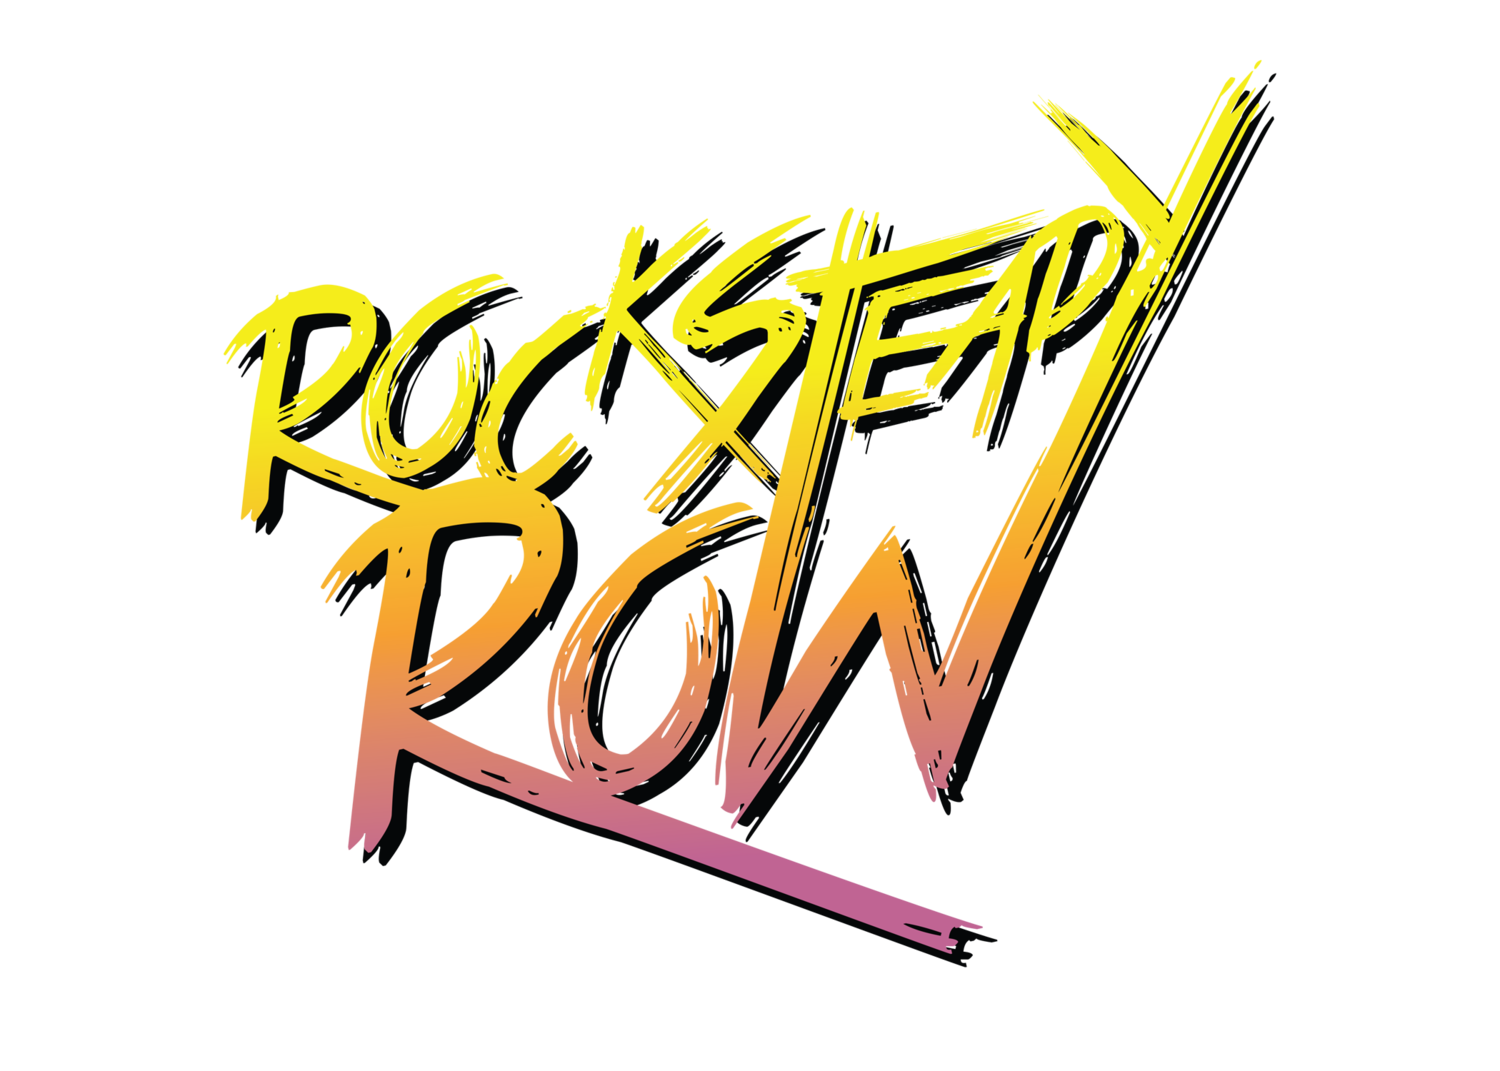 Rock Steady Row